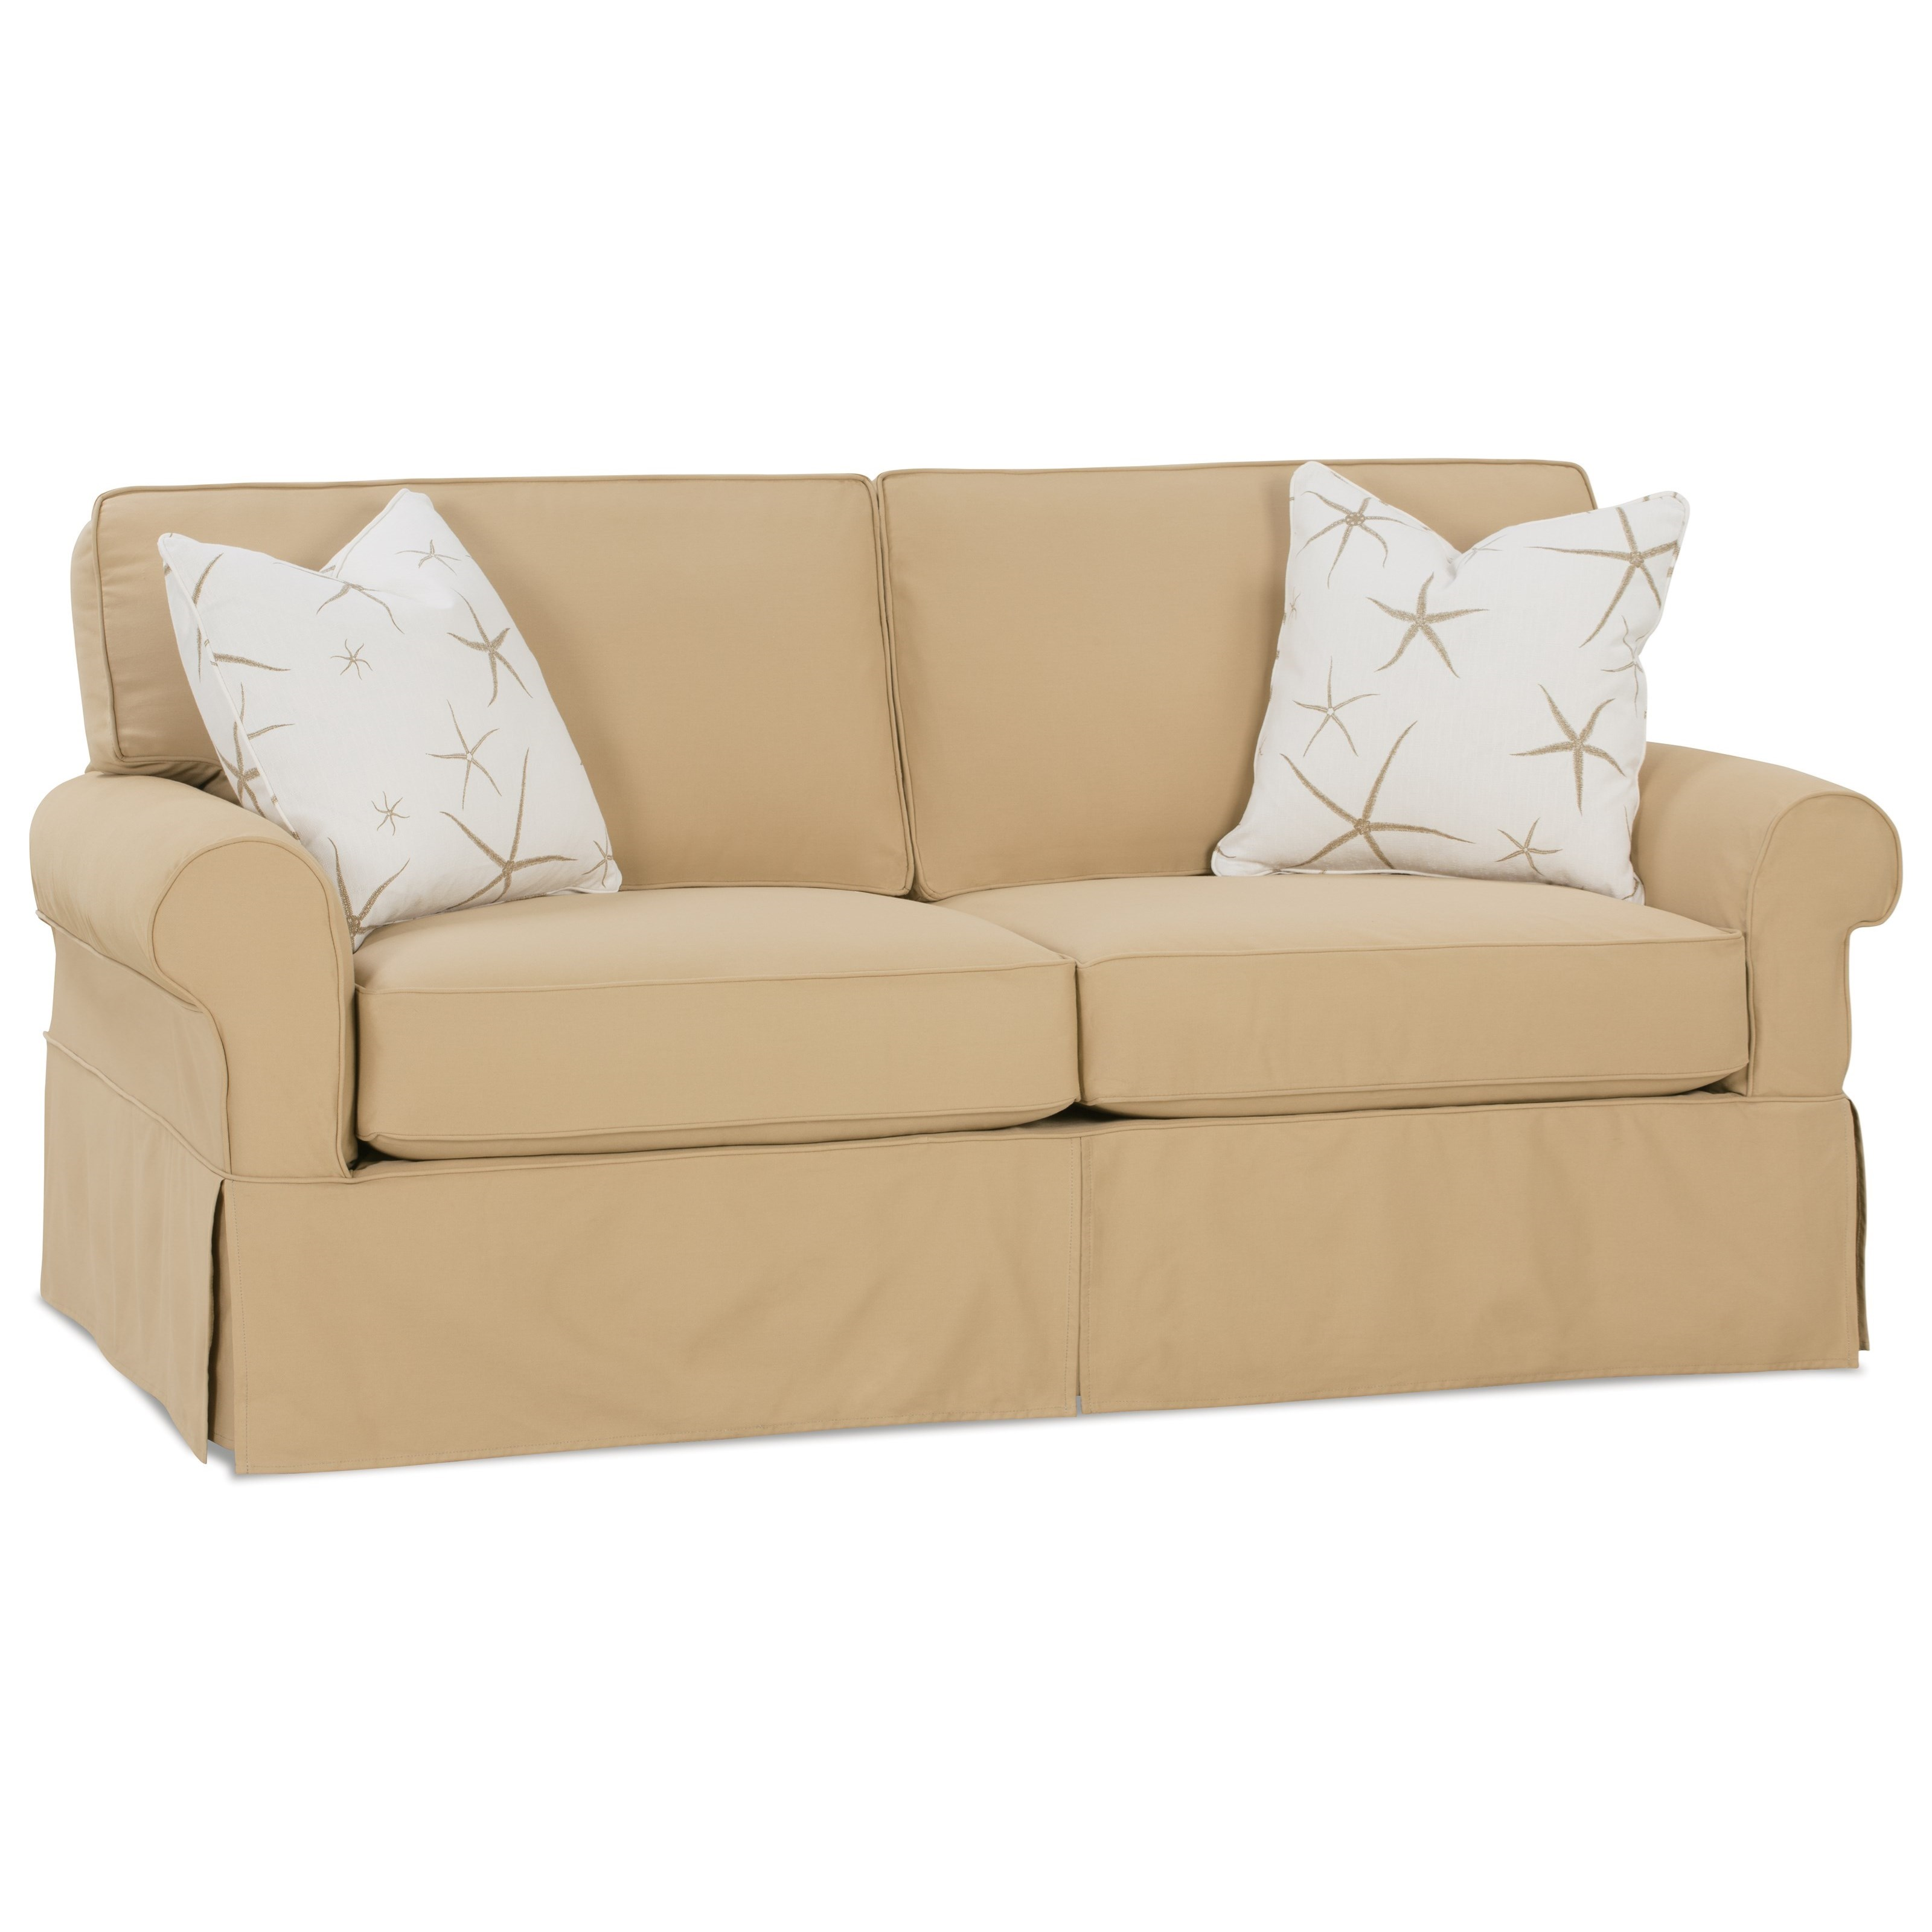 Nantucket  Transitional Sleeper Sofa by Rowe at Baer's Furniture